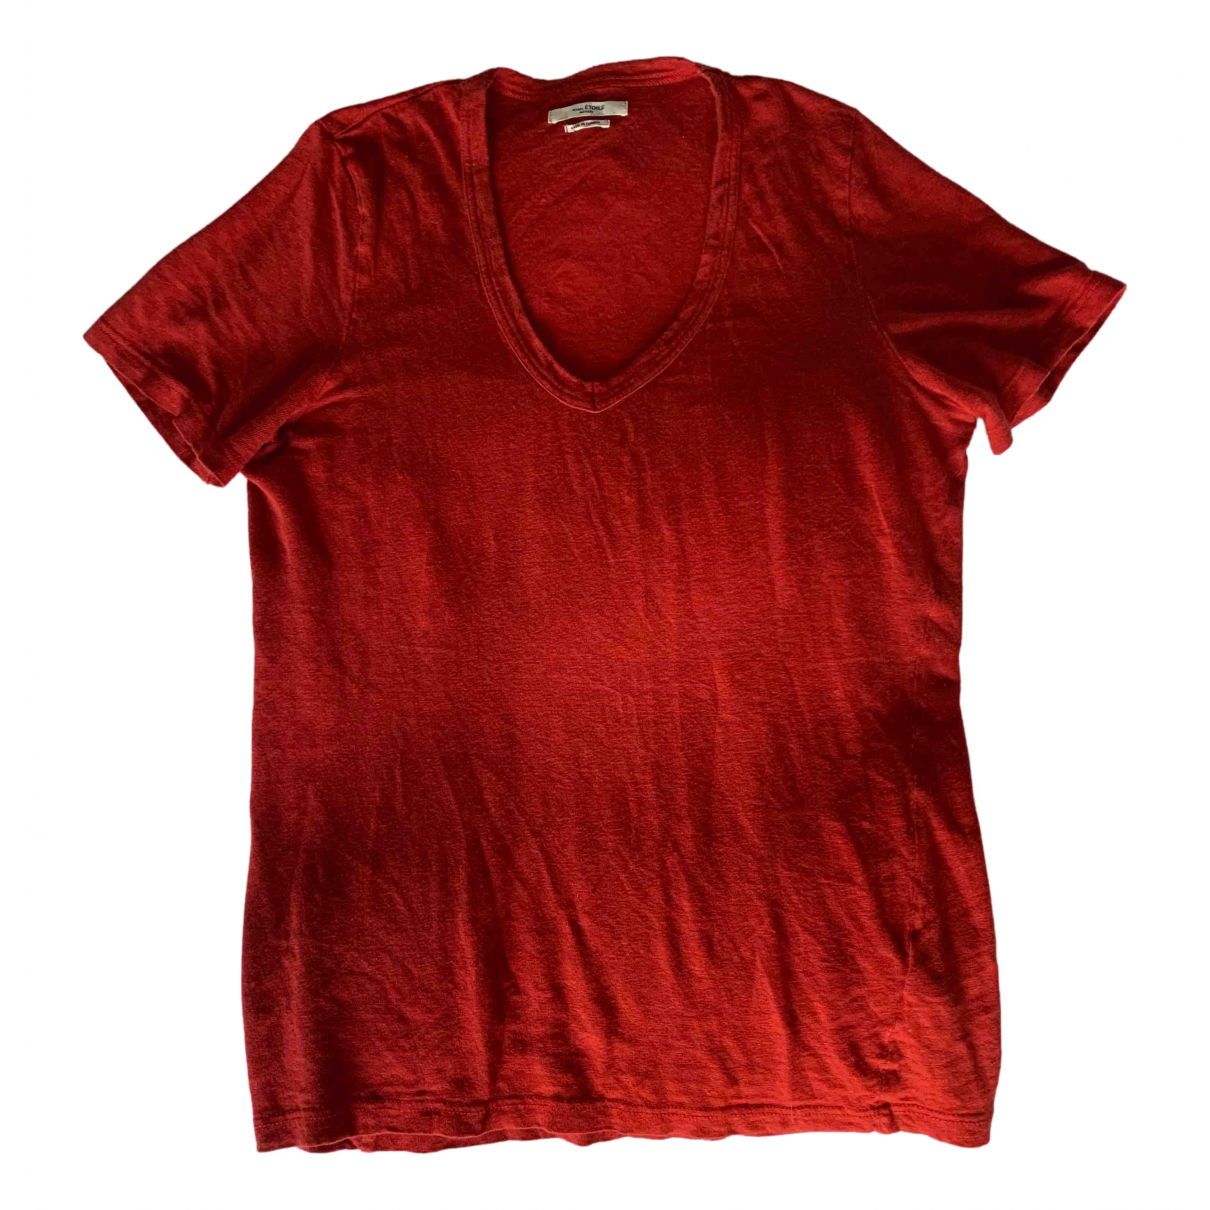 Isabel Marant Etoile N Red Cotton  top for Women M International